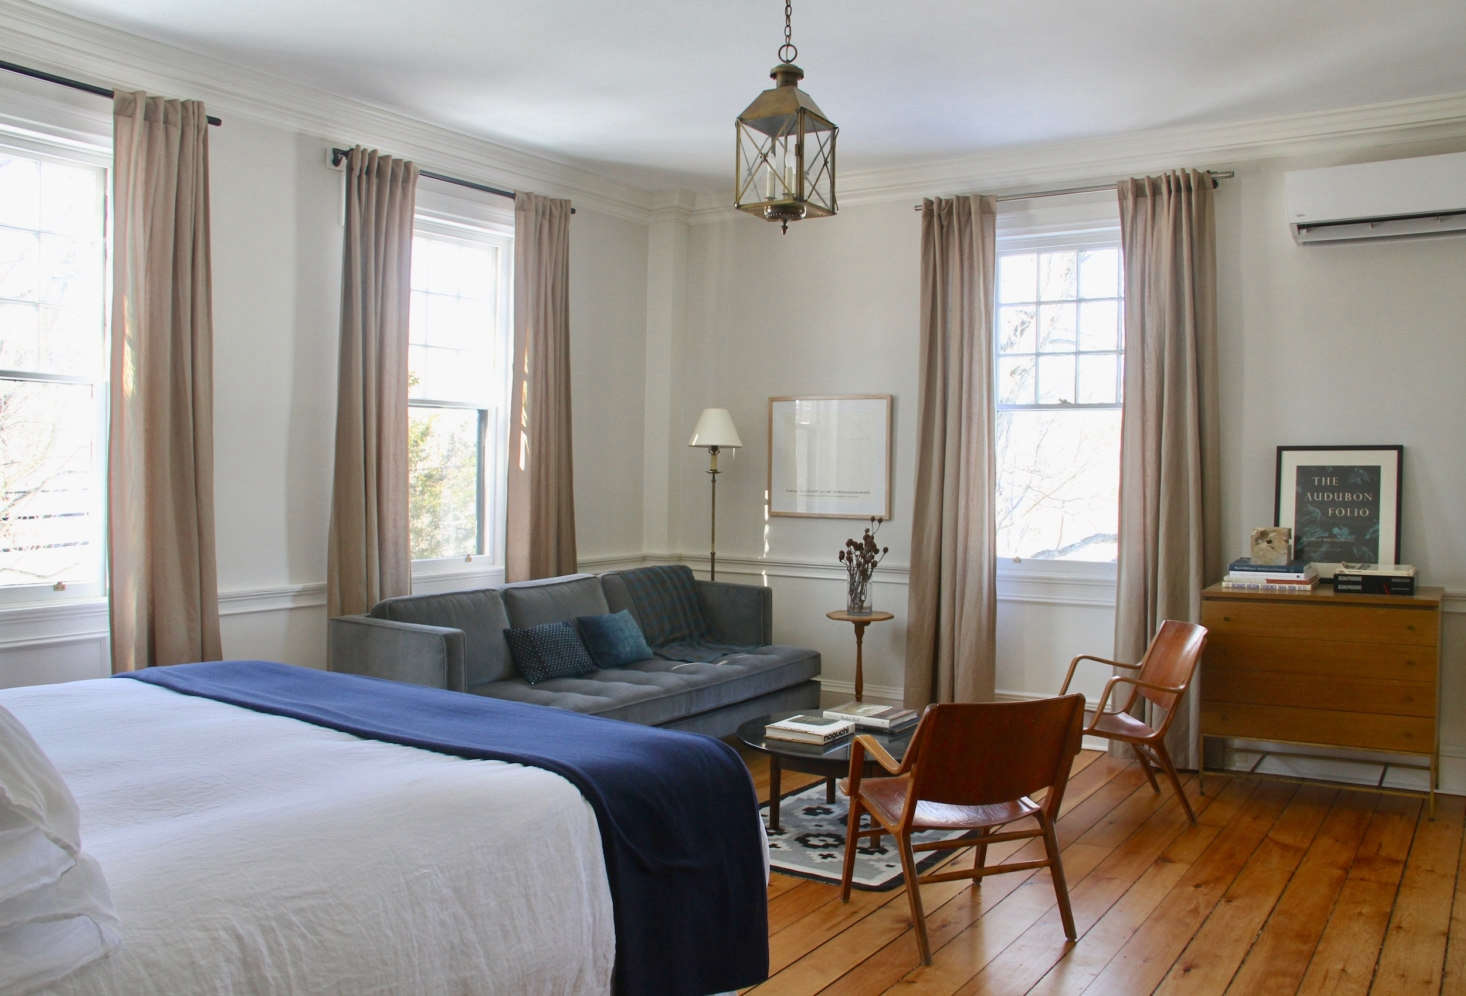 There are five guest rooms in all. Each room has Matteo bed linens, Faribault blankets, and charm to spare. This is guest room #